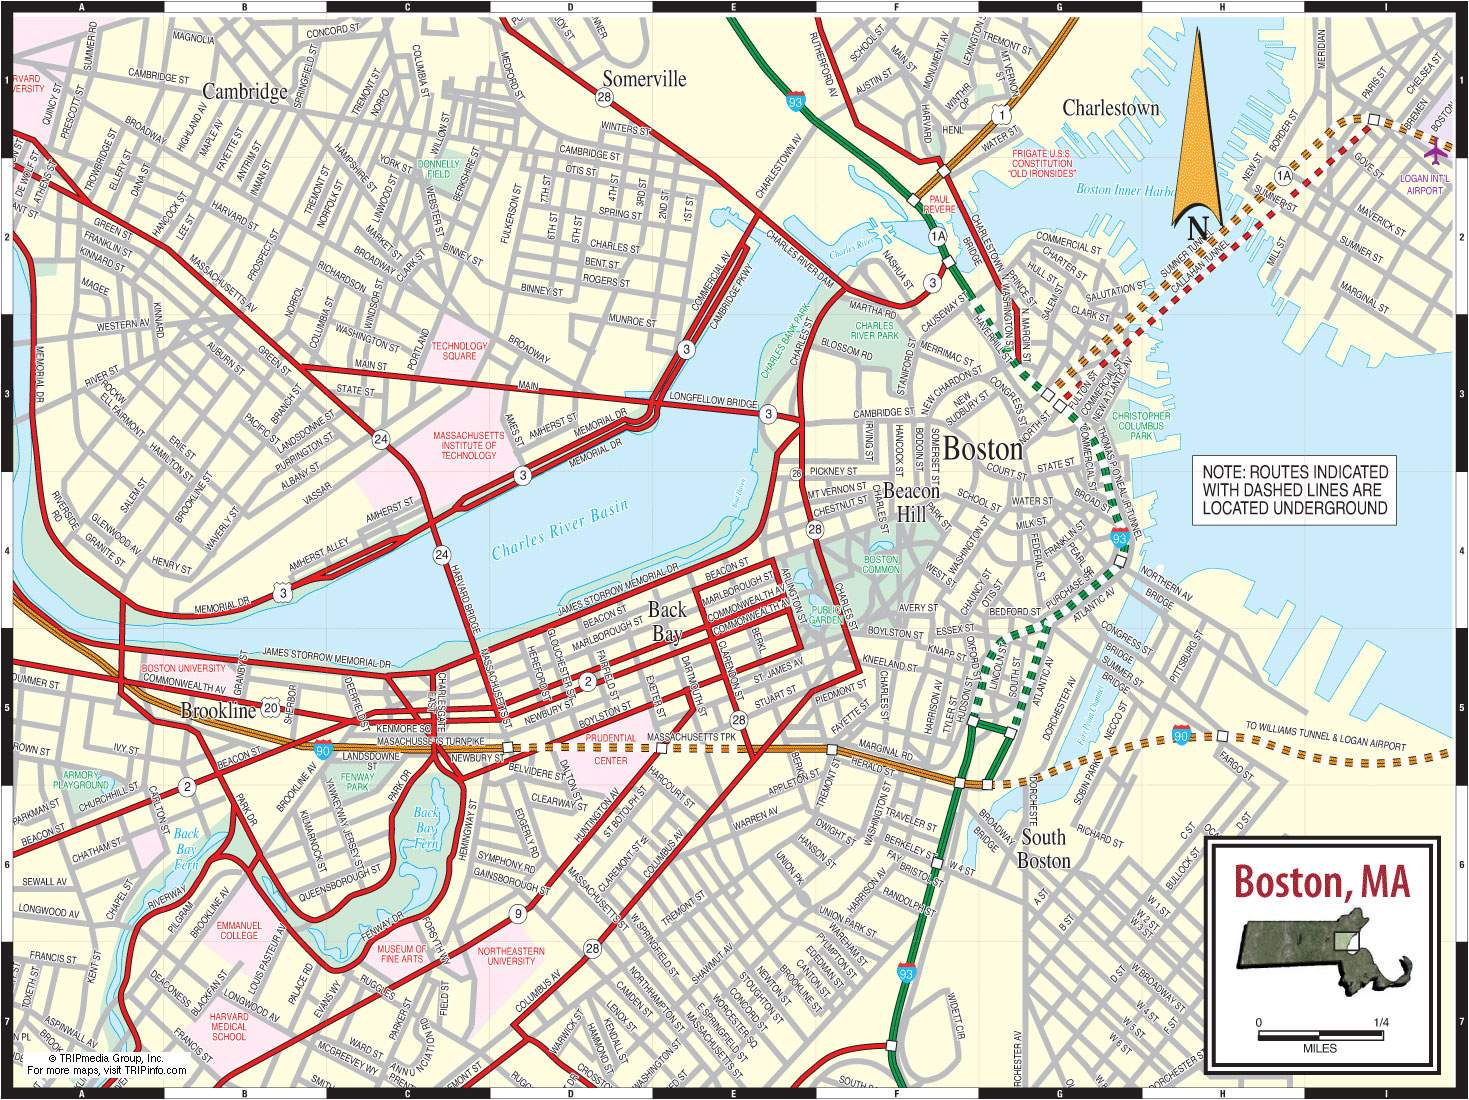 Boston Street Map Large Boston Maps for Free Download and Print | High Resolution